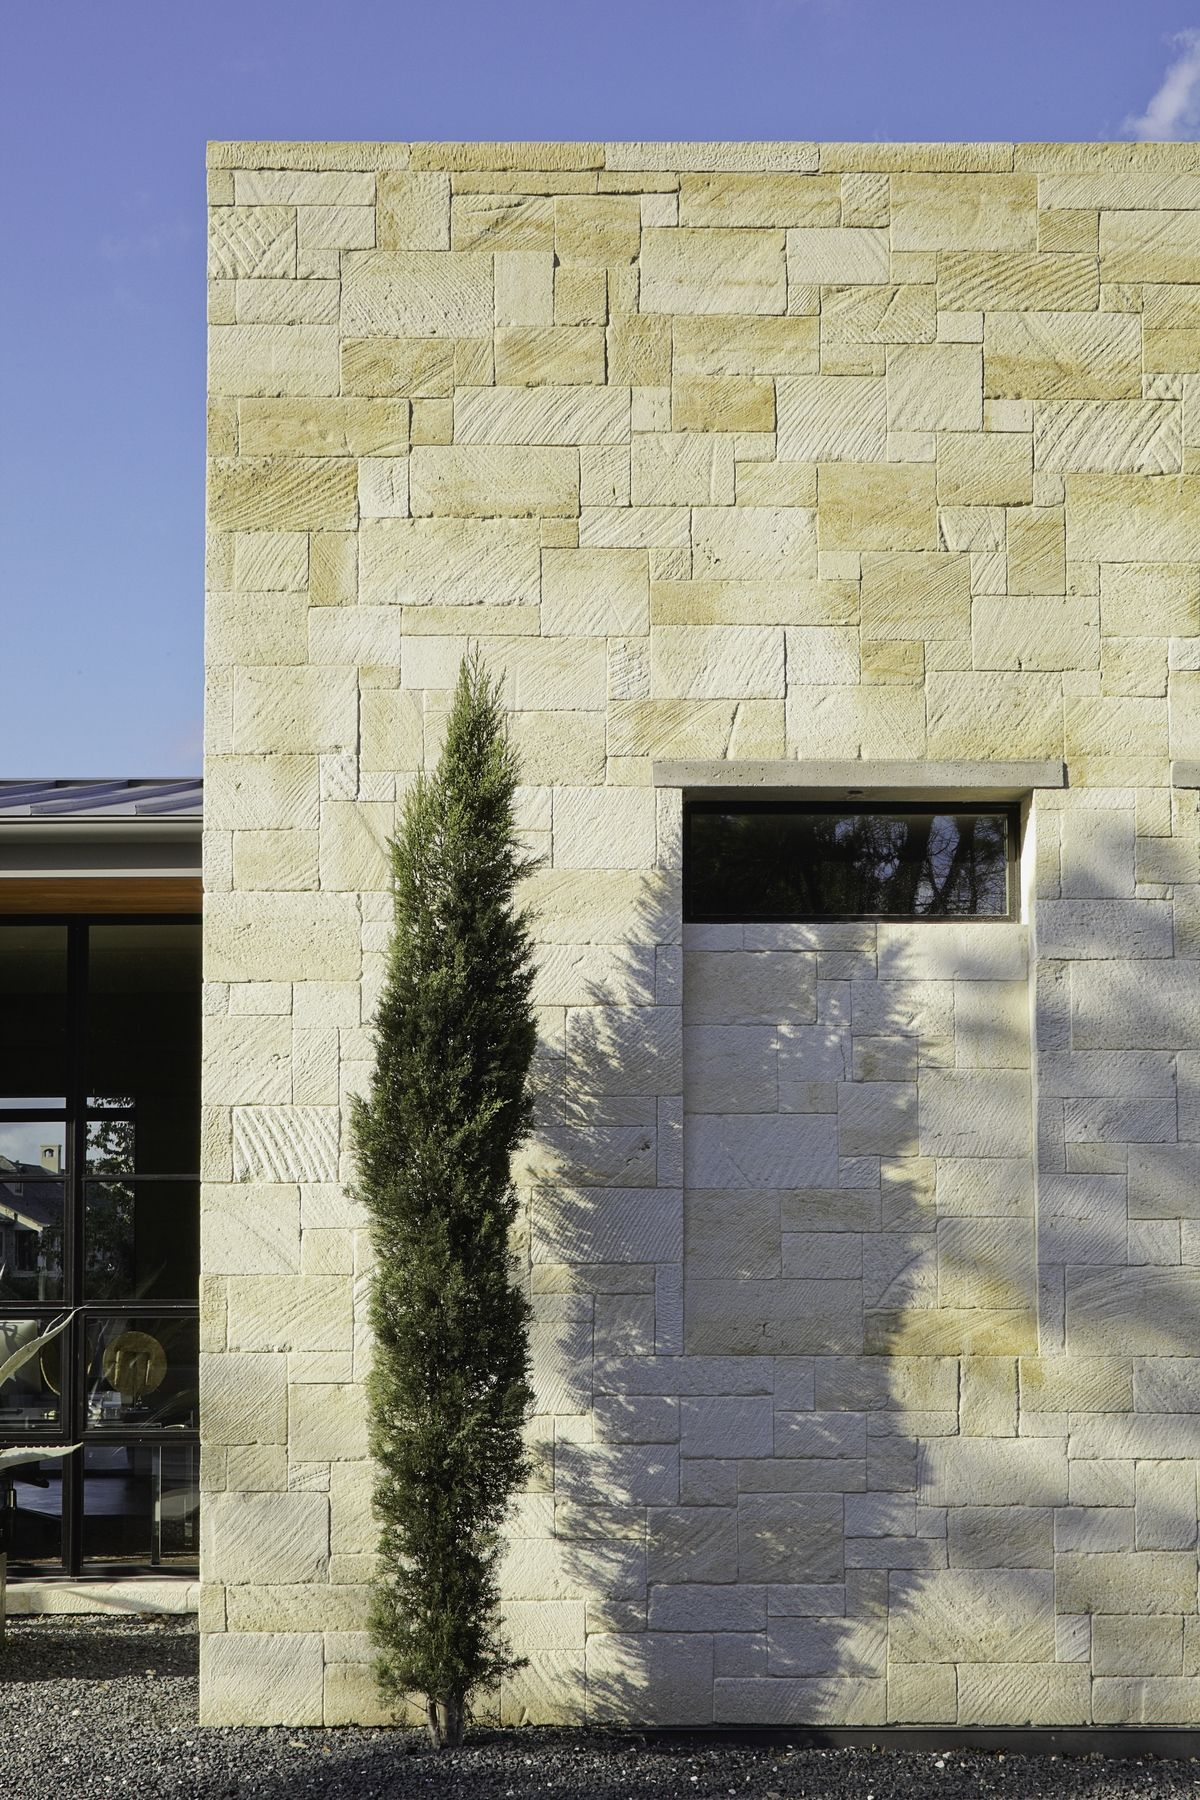 Exterior window design for home  natural materials geometric shapes home cornerstone   exteriors